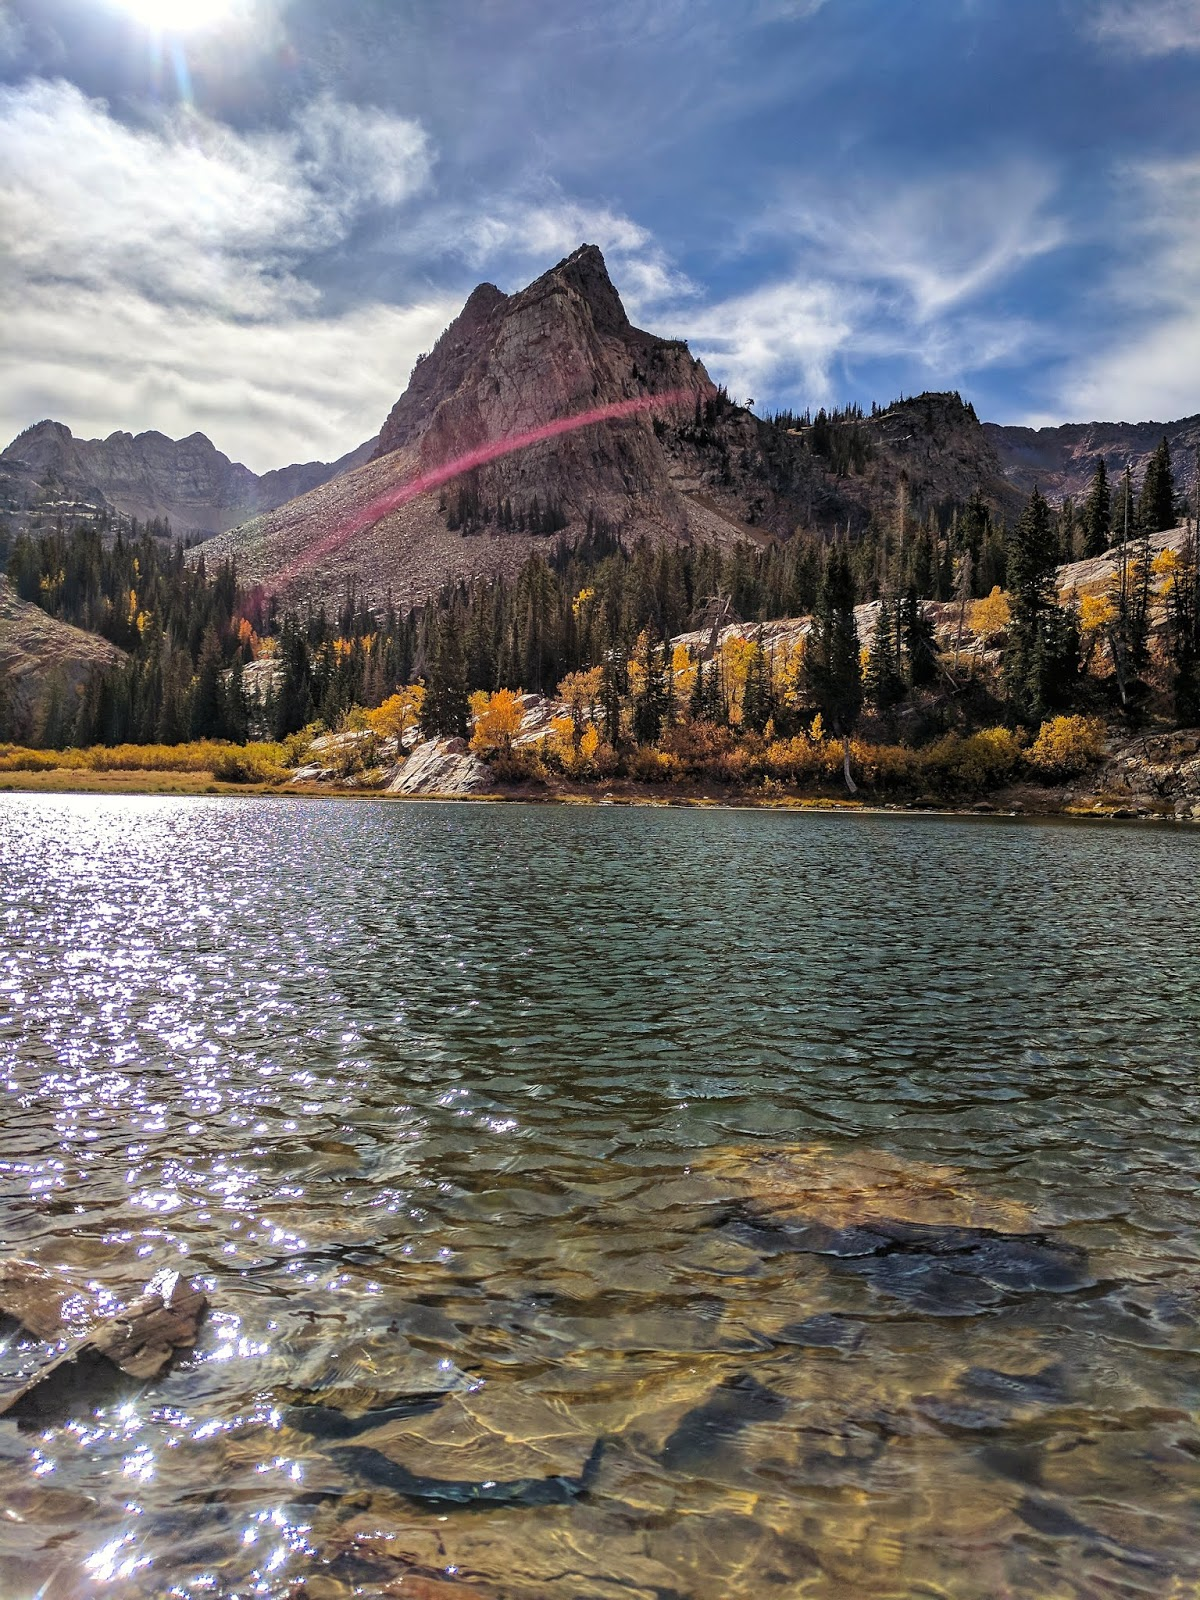 360 Adventure Lake Blanche, Lake Lilian, and Lake Florence, The